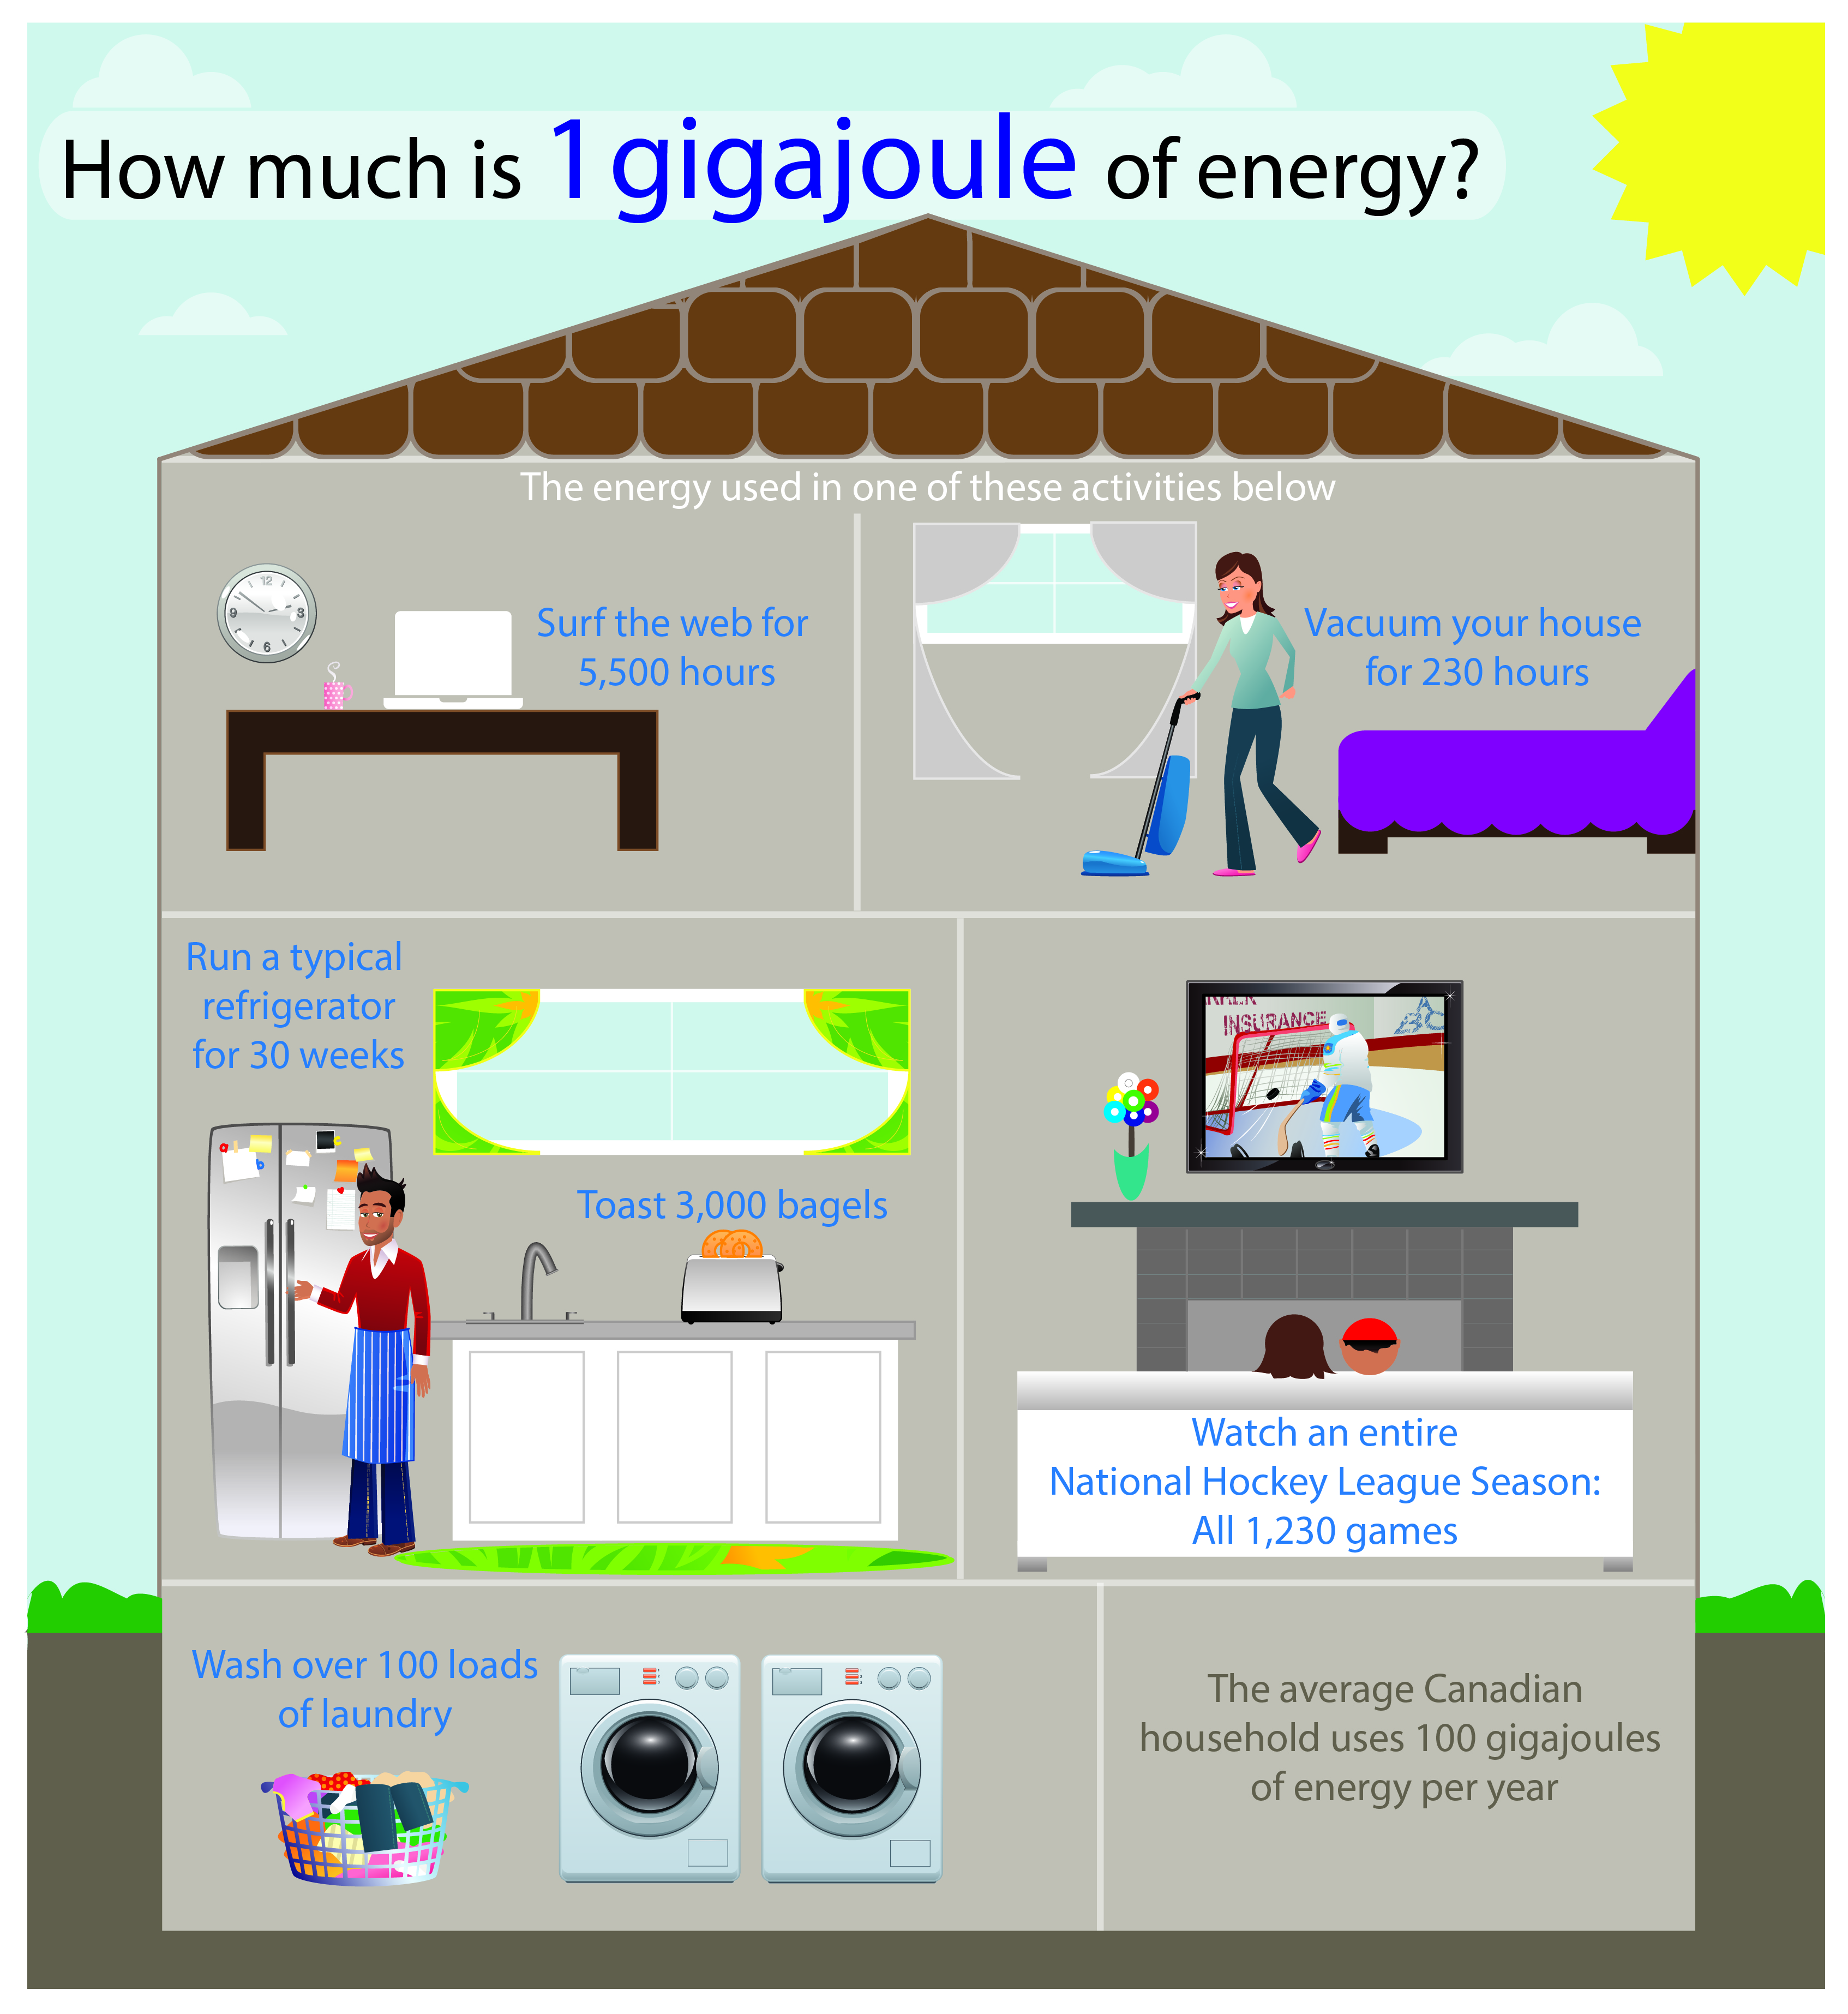 how much is 1 gigajoule of energy infographic in a house setting